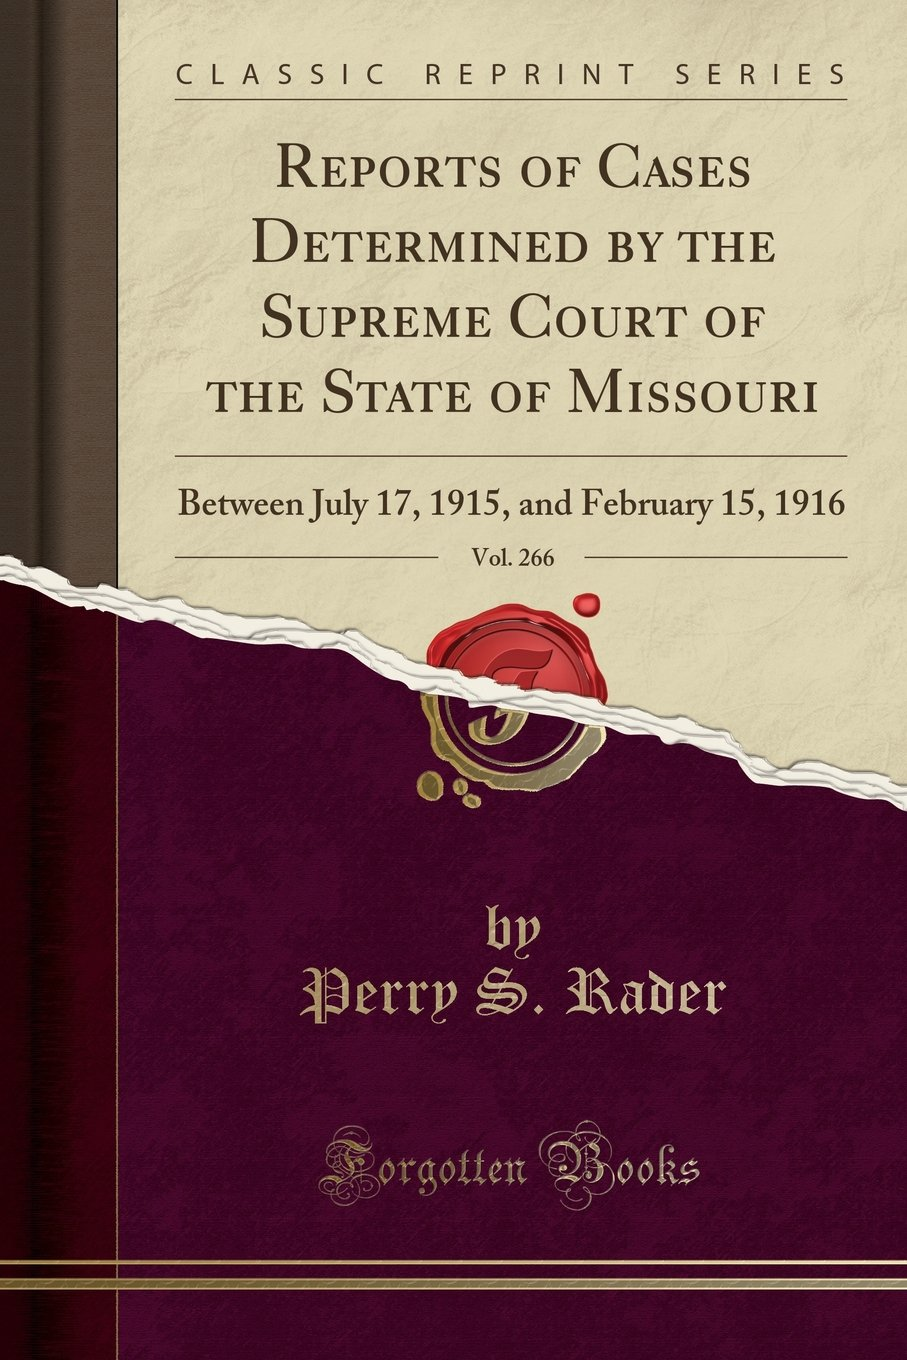 Reports of Cases Determined by the Supreme Court of the State of Missouri, Vol. 266: Between July 17, 1915, and February 15, 1916 (Classic Reprint) ebook